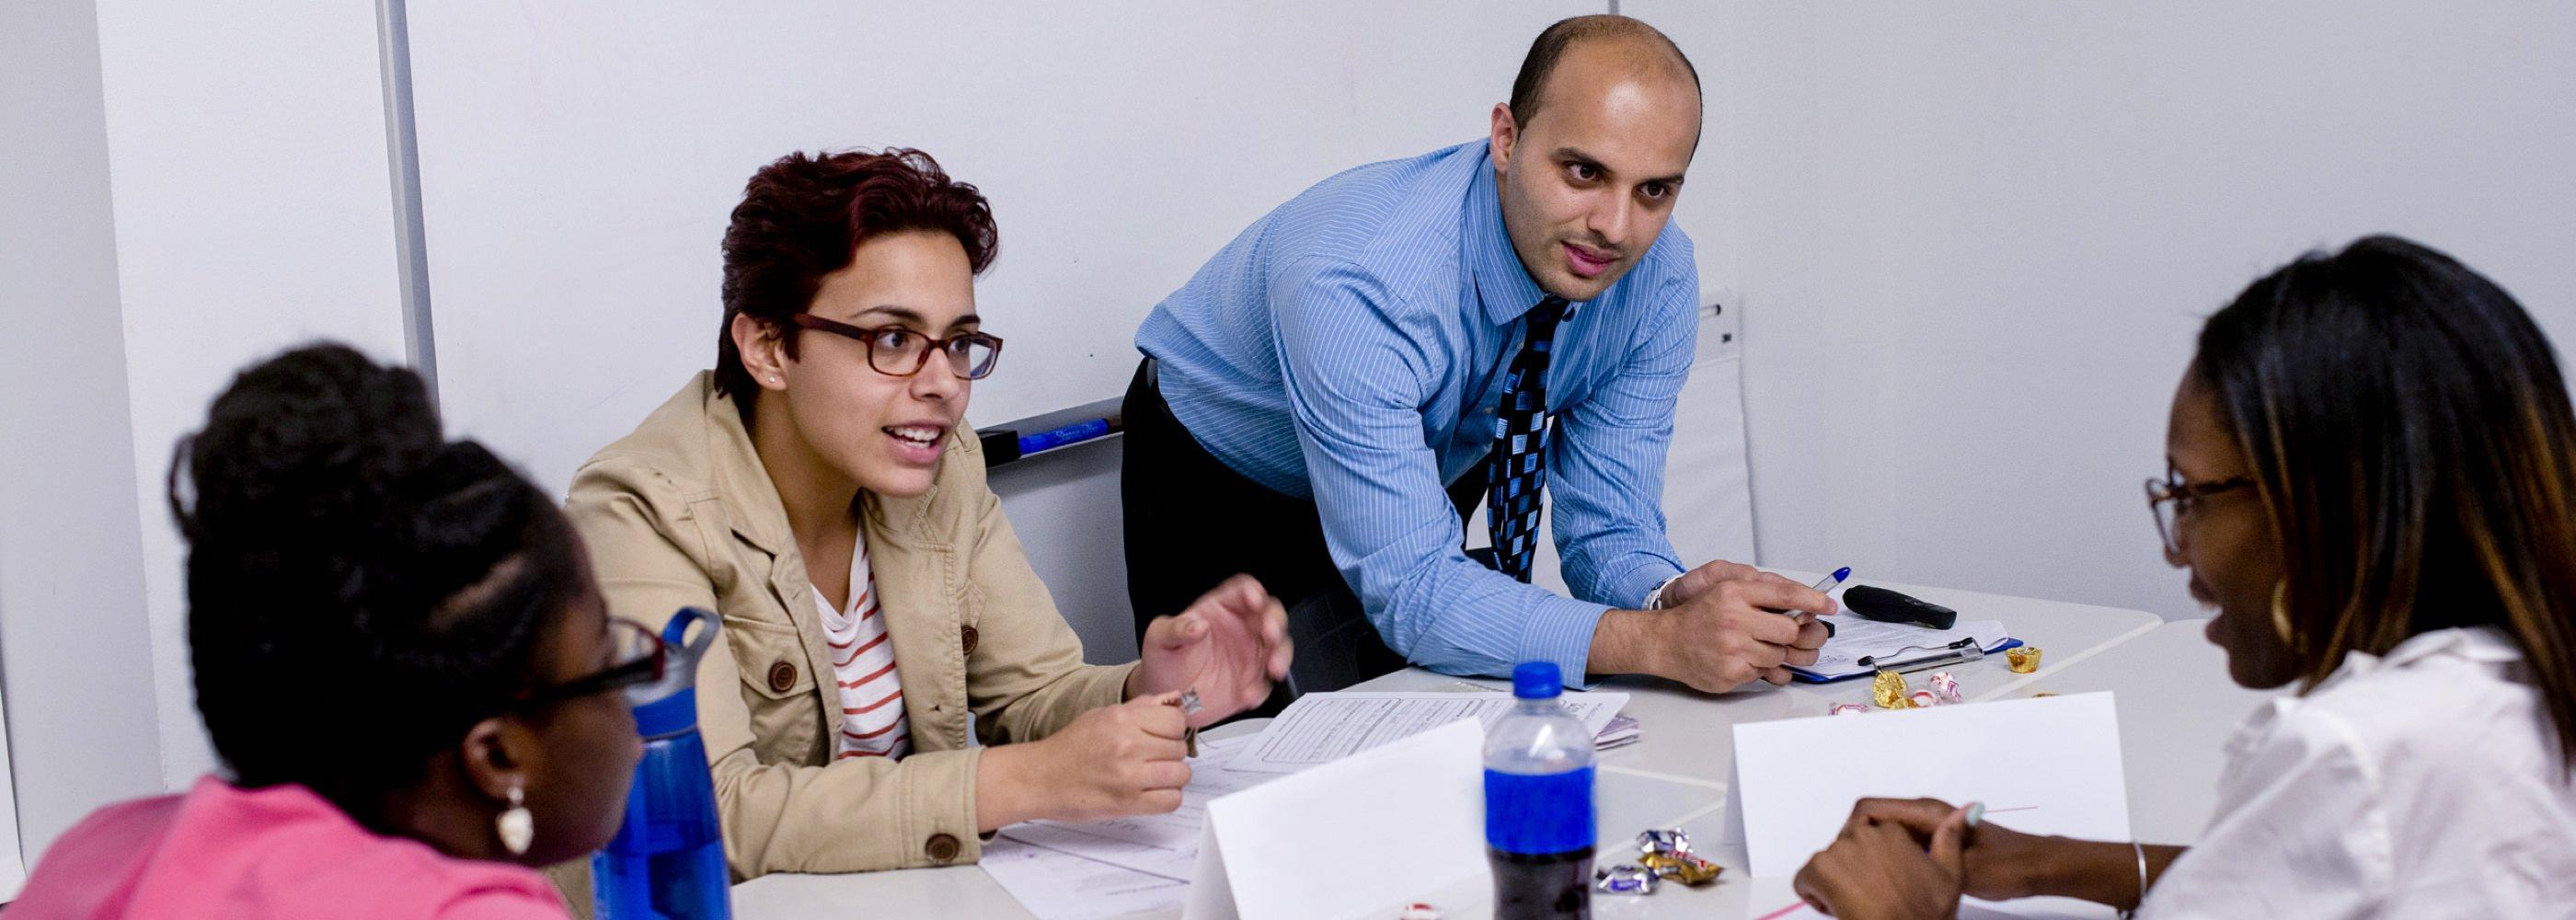 Relay New York Assistant Professor of Practice Jay Maqsood works with graduate students during a special education class.